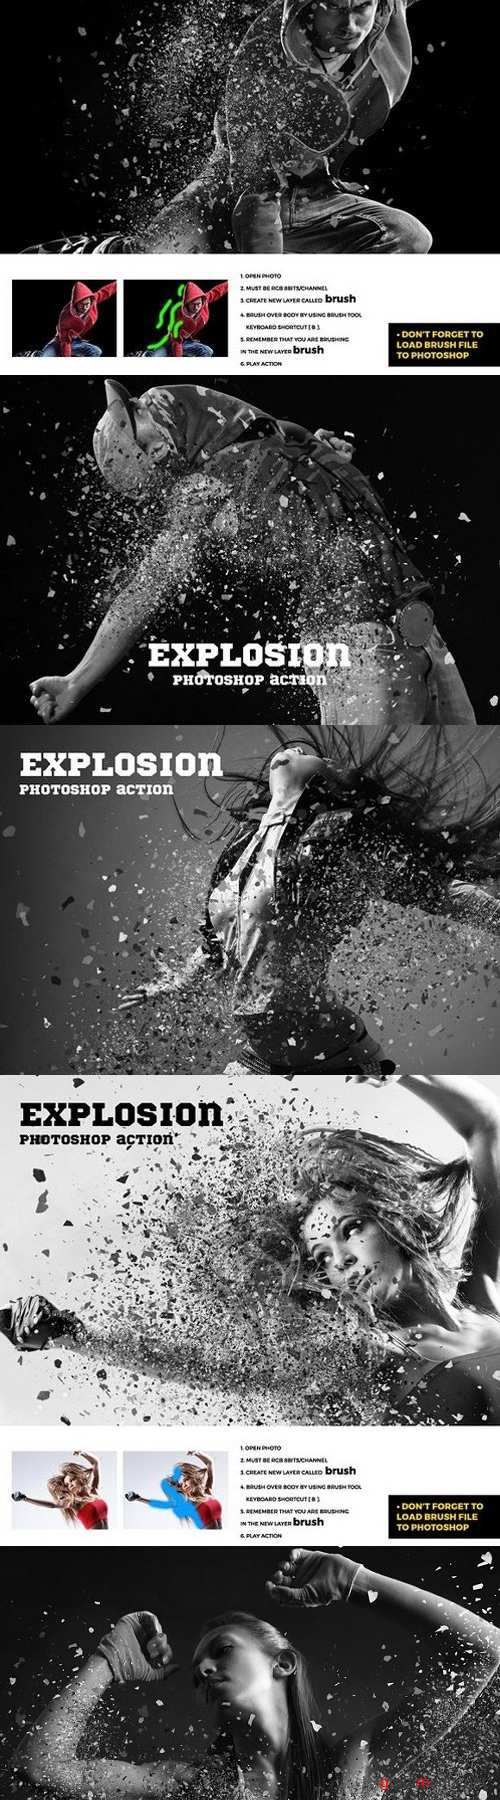 Explosion Photoshop Action 1772101